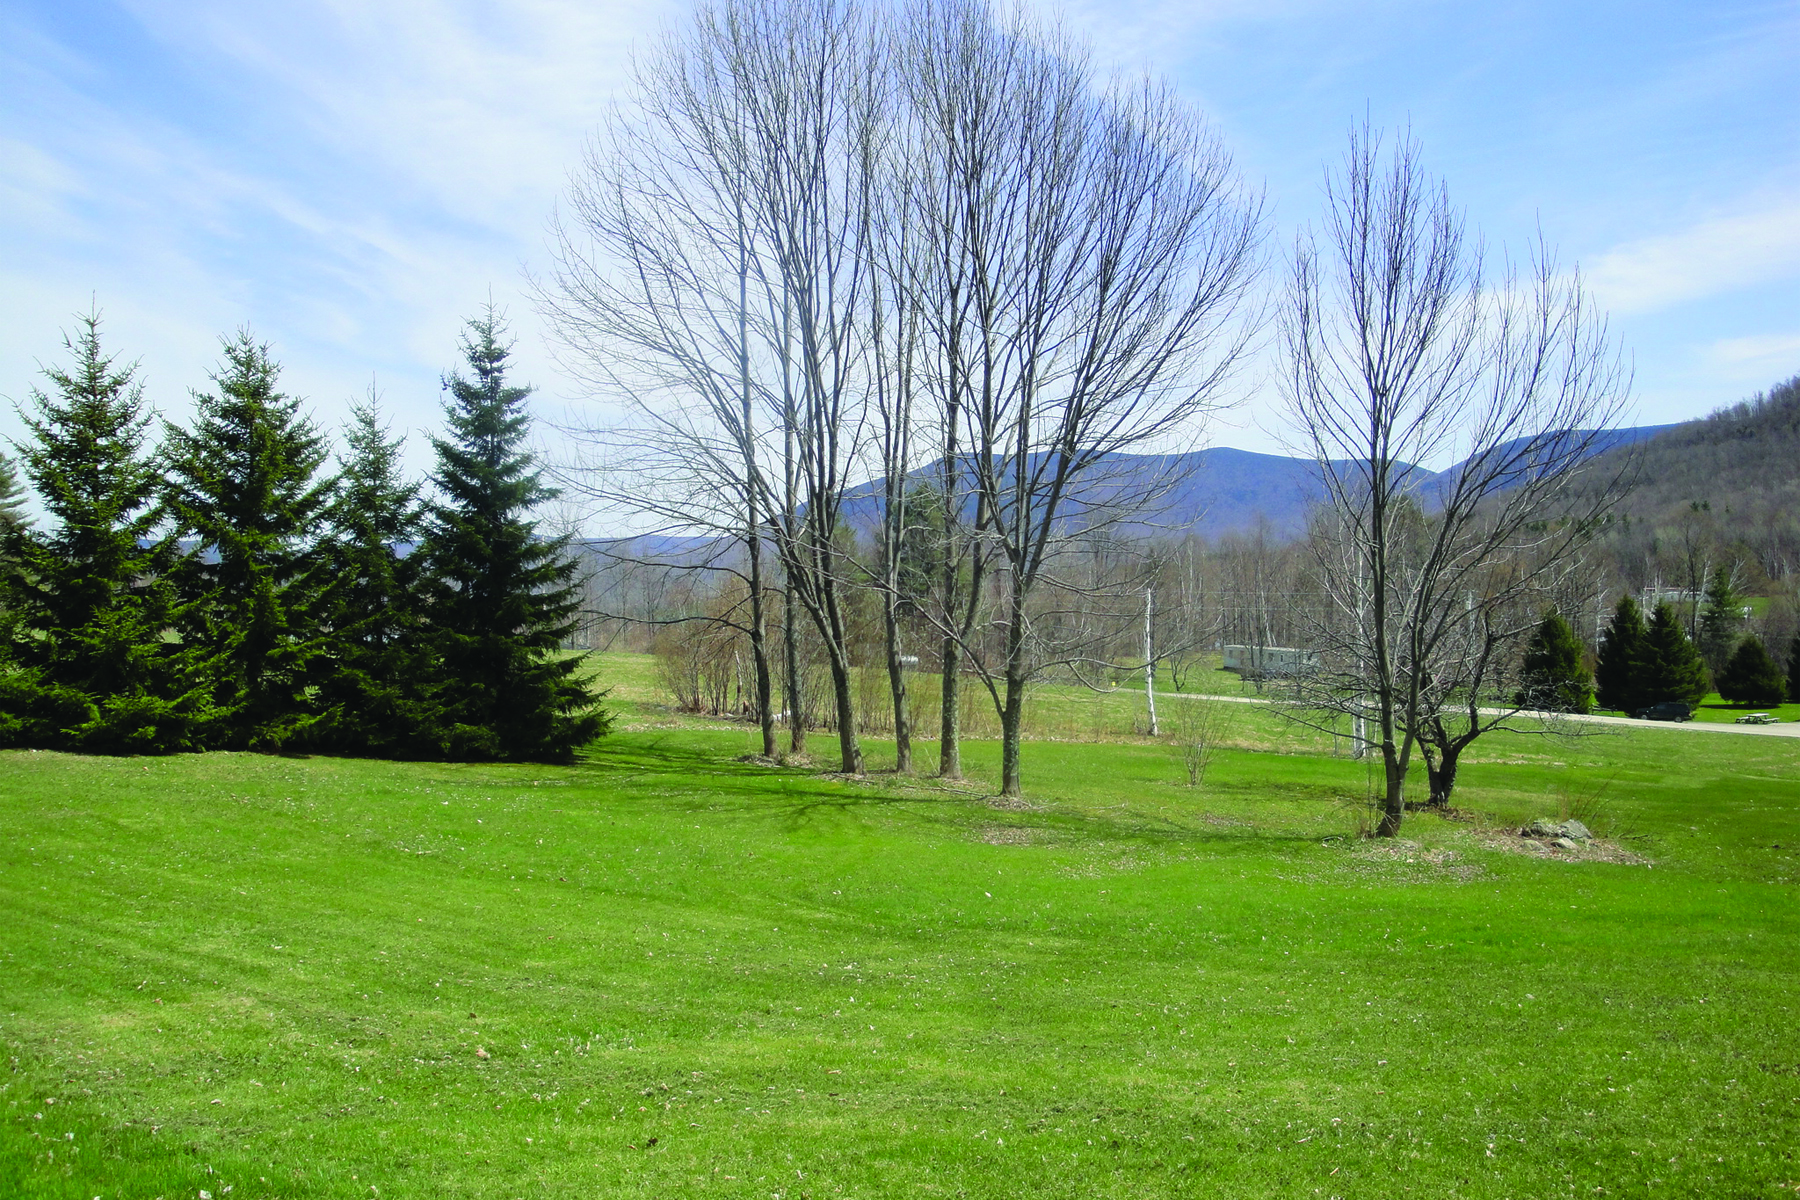 Terreno por un Venta en Panoramic Mountain Vistas 169 Congdon Danby, Vermont 05739 Estados Unidos